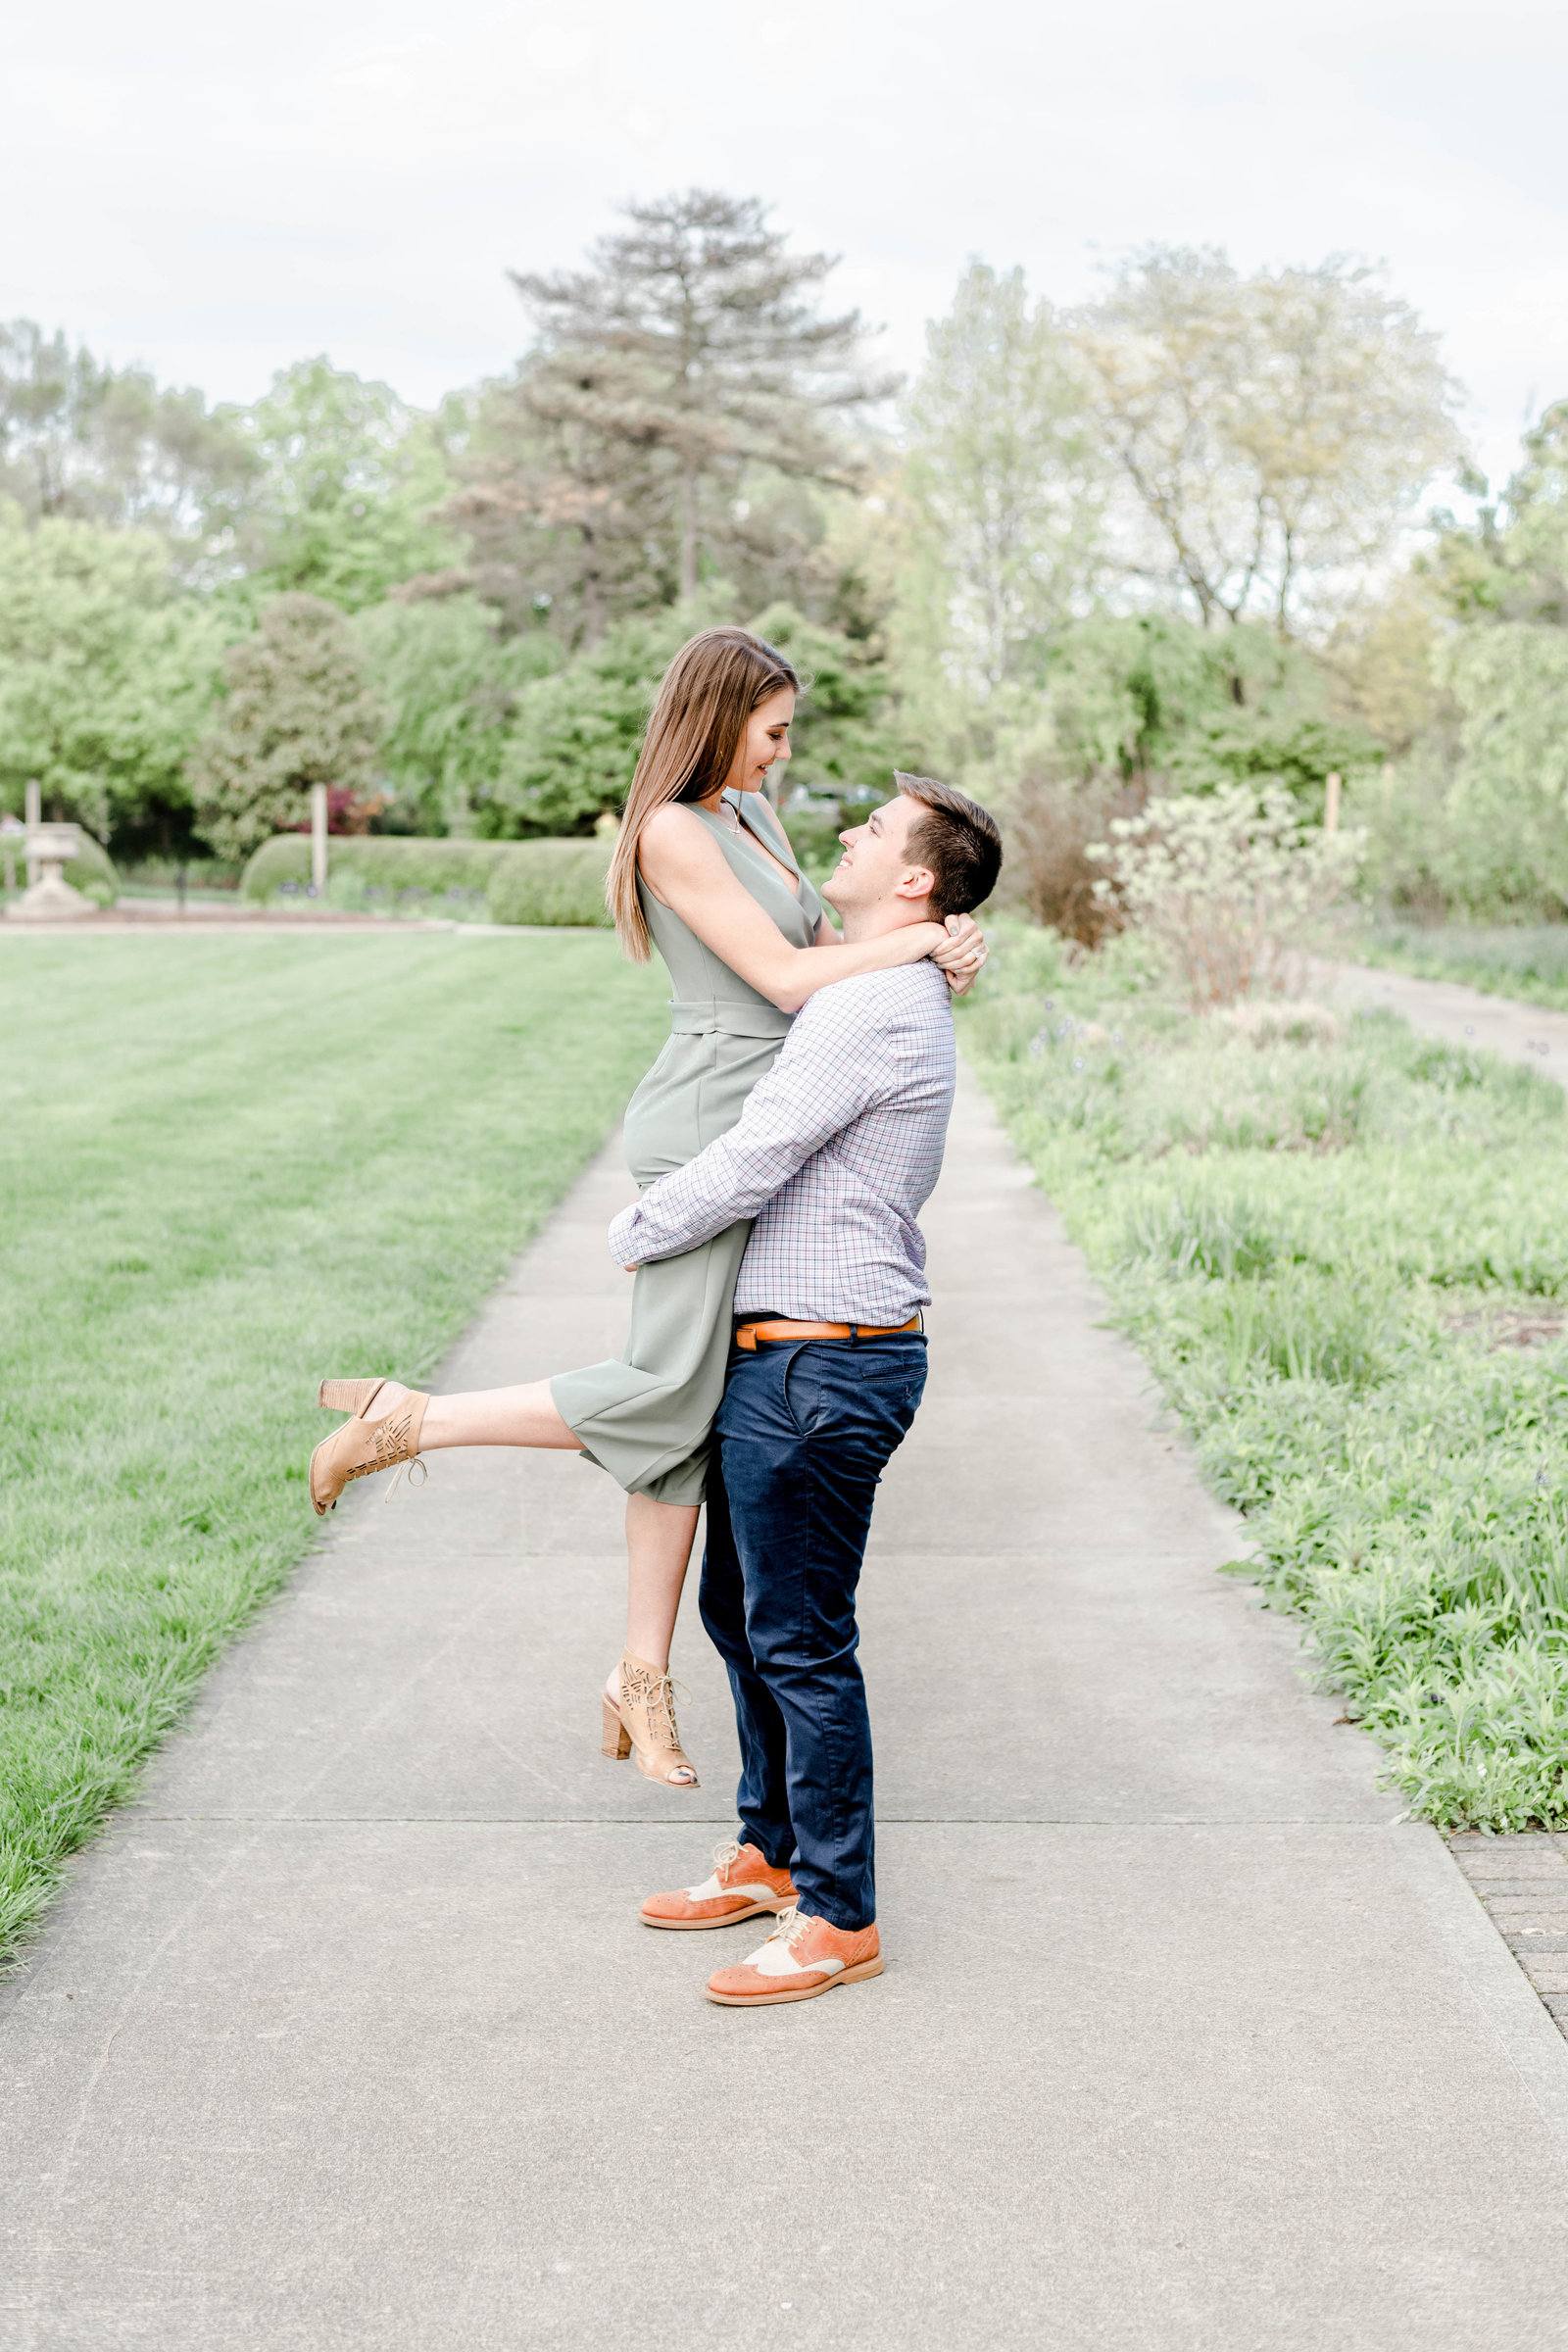 Cassidy Alane Photography-Liz & Gabe -Ault Park - Dayton & Cincinnati Ohio Wedding & Engagement photographer21